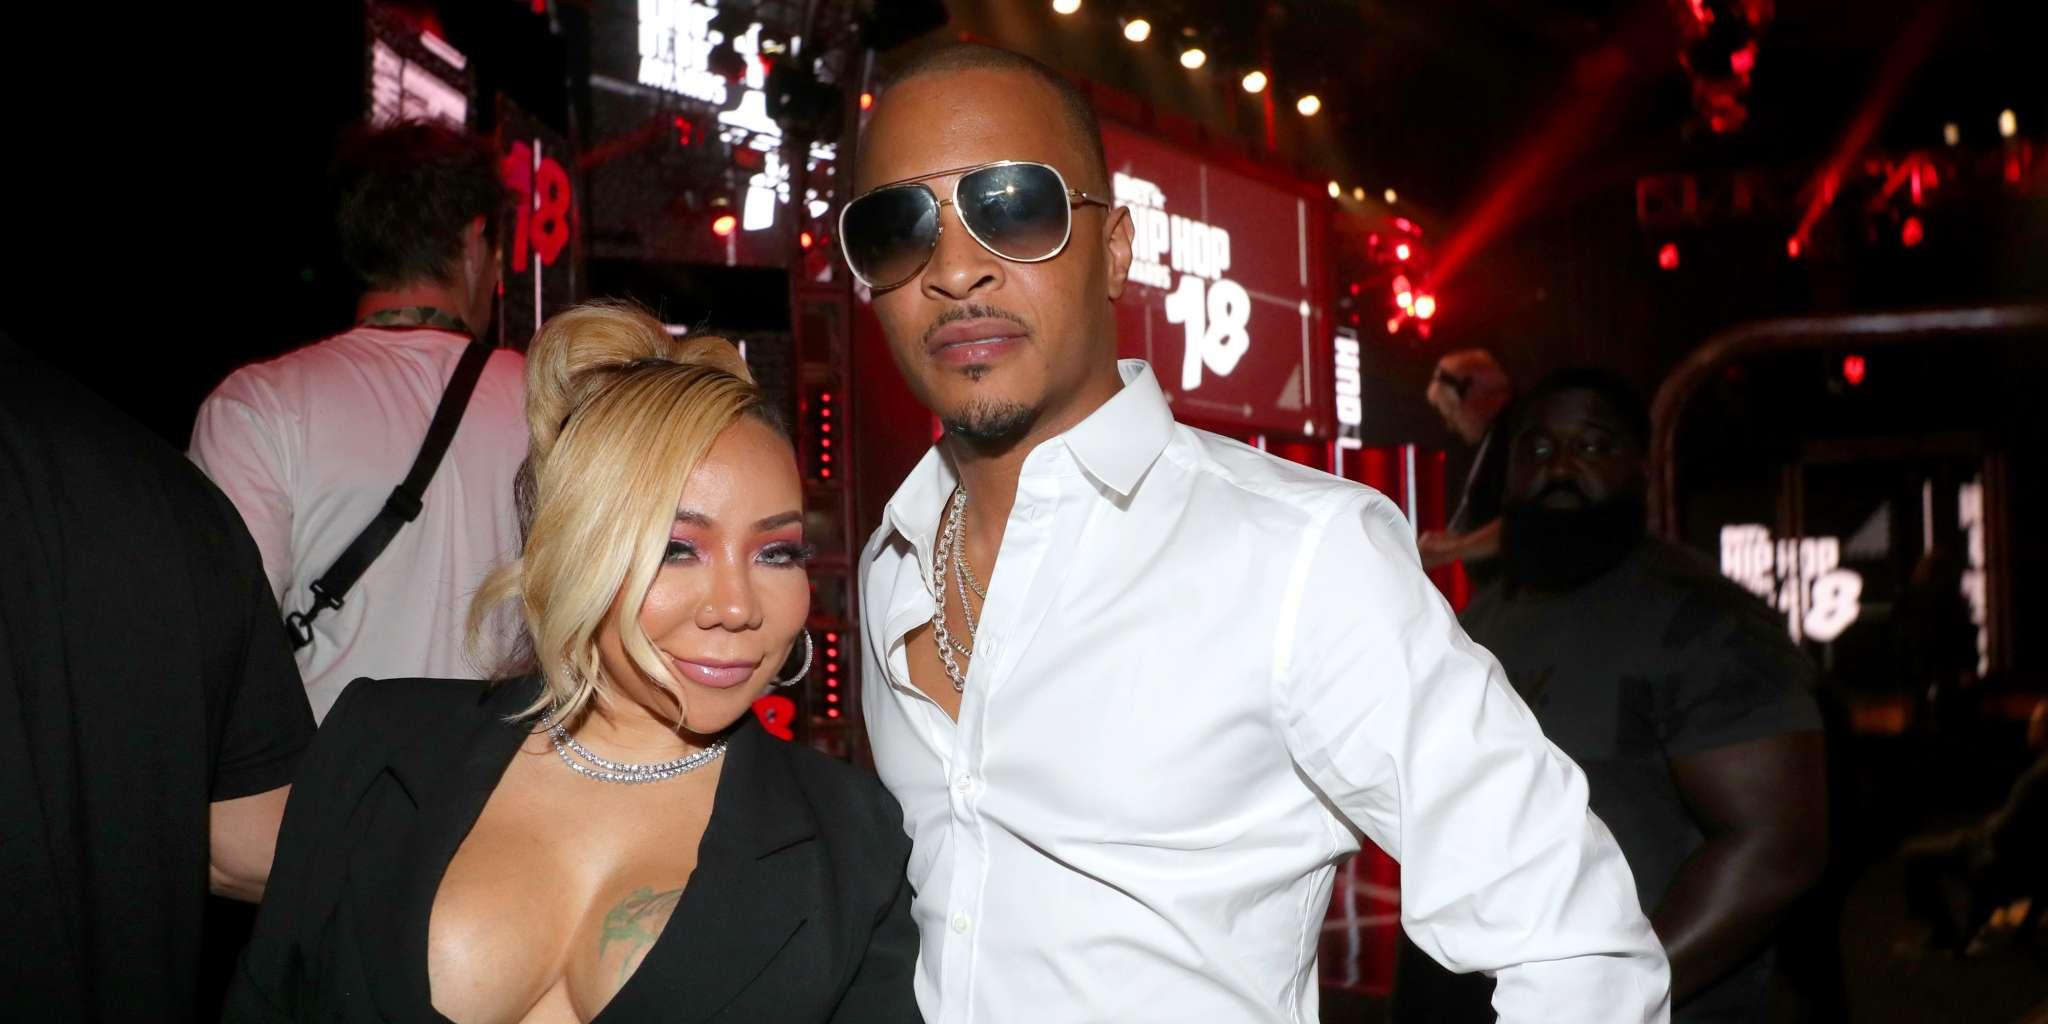 """T.I. Shares Throwback Pics And Fans Say He Looks Like His Son, Domani: 'Rare Sighting Of """"Lil Bad Ass Tip"""" In His Adolescent Years'"""